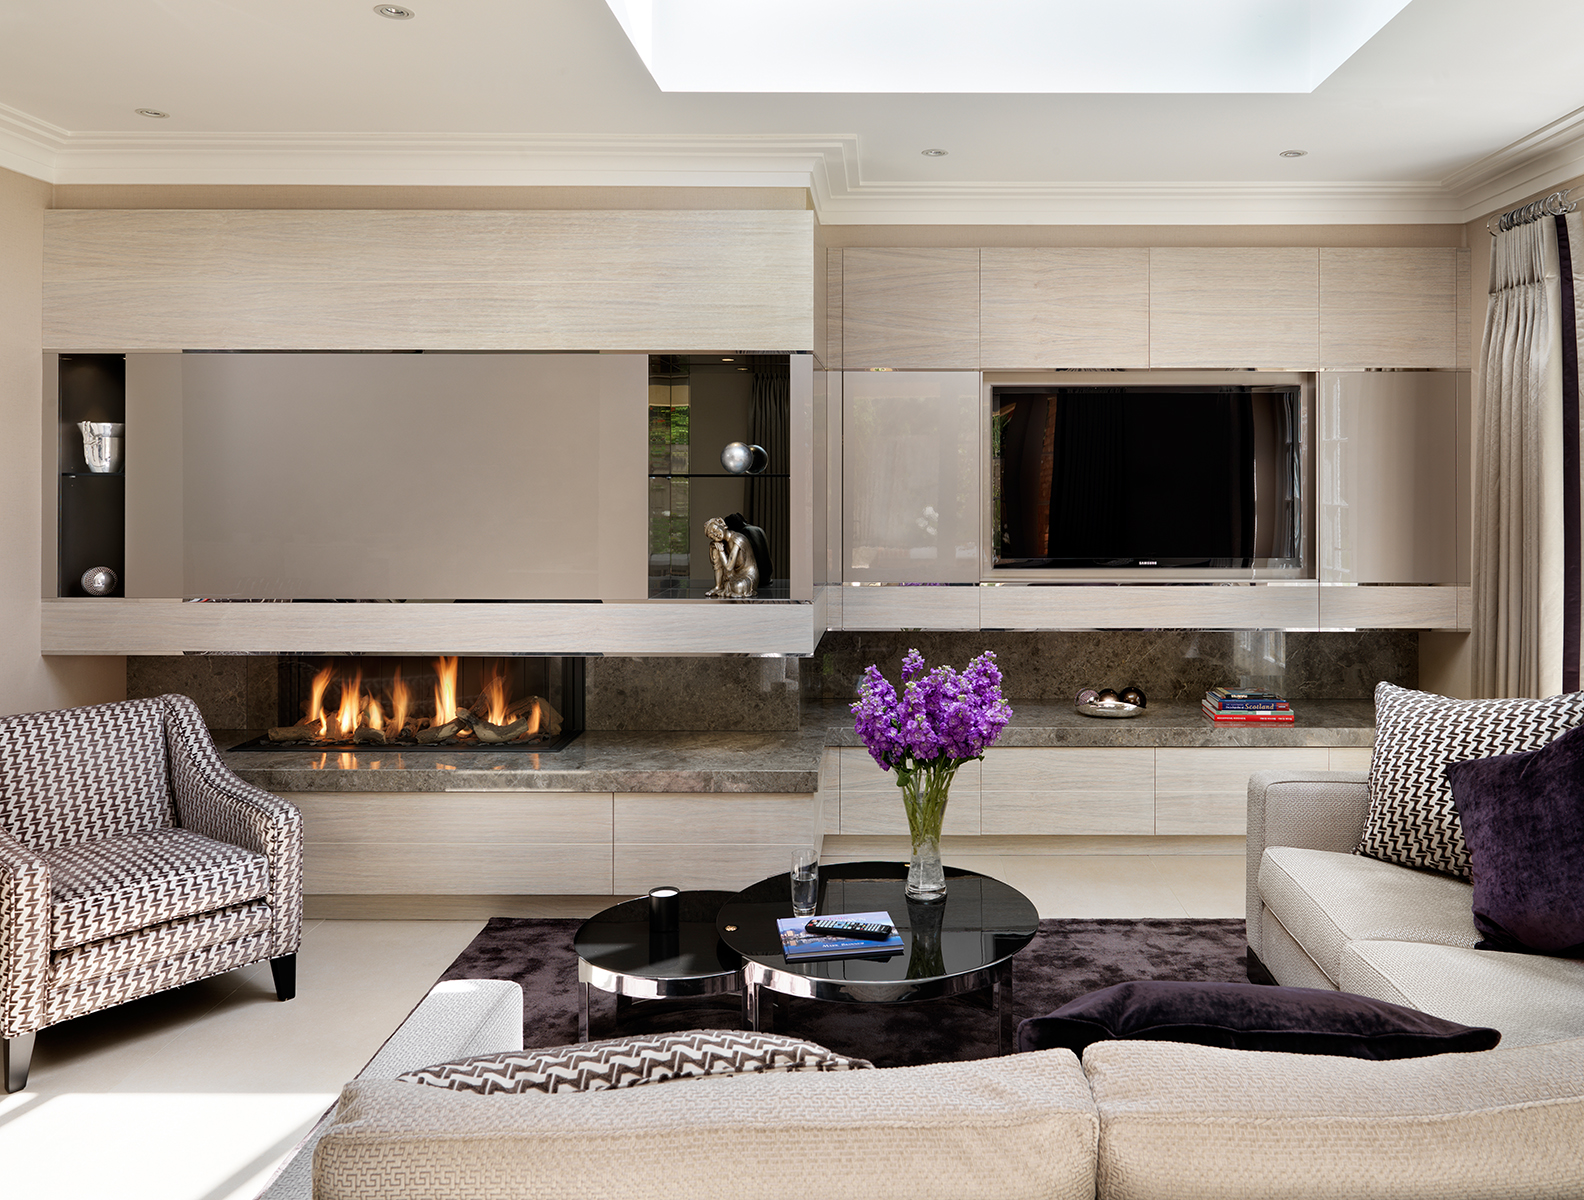 design for a stylish entertaining space for a Surrey property